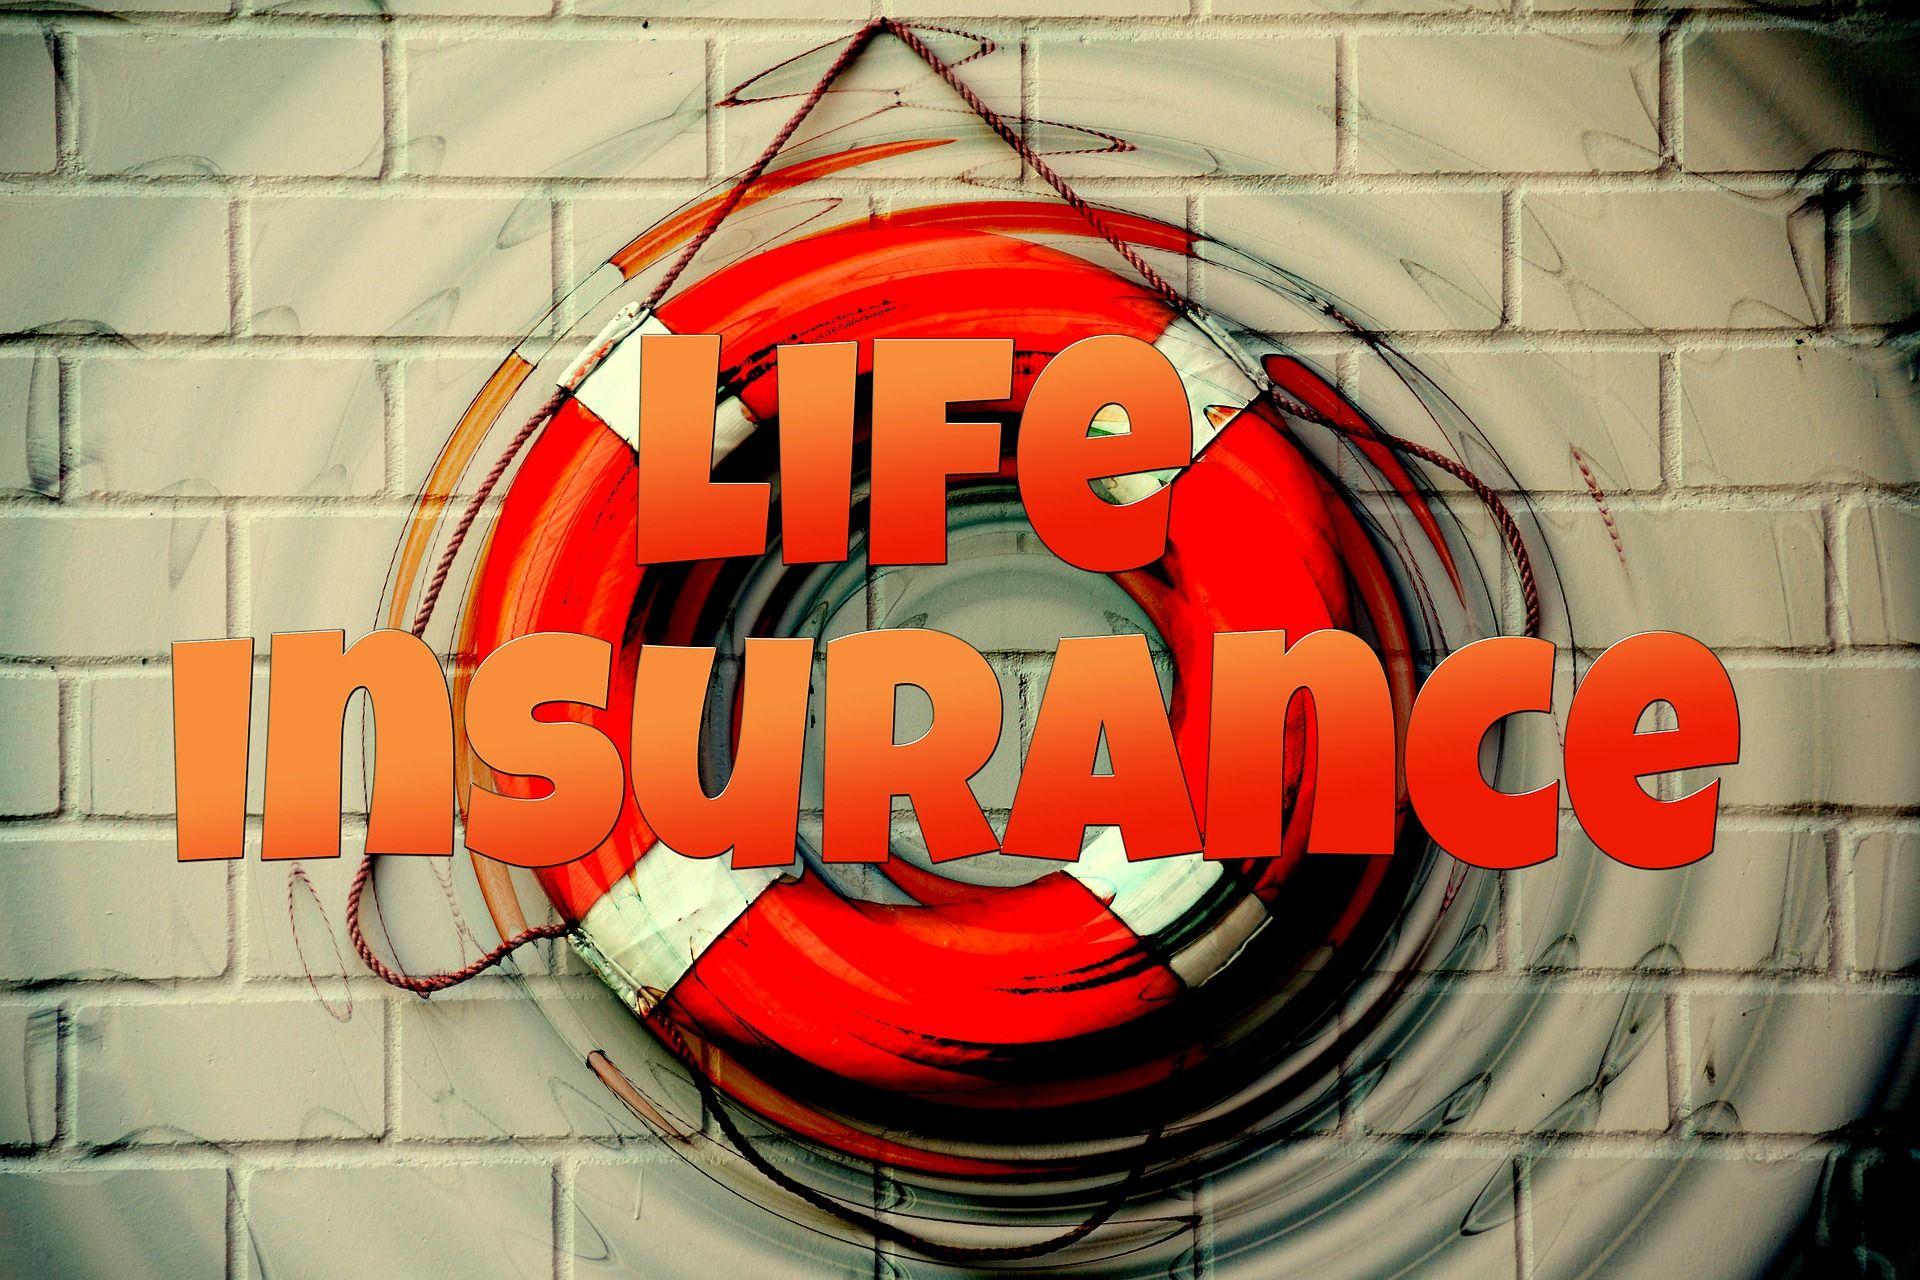 10bestinsurancecompanies Provides The Insurance User With